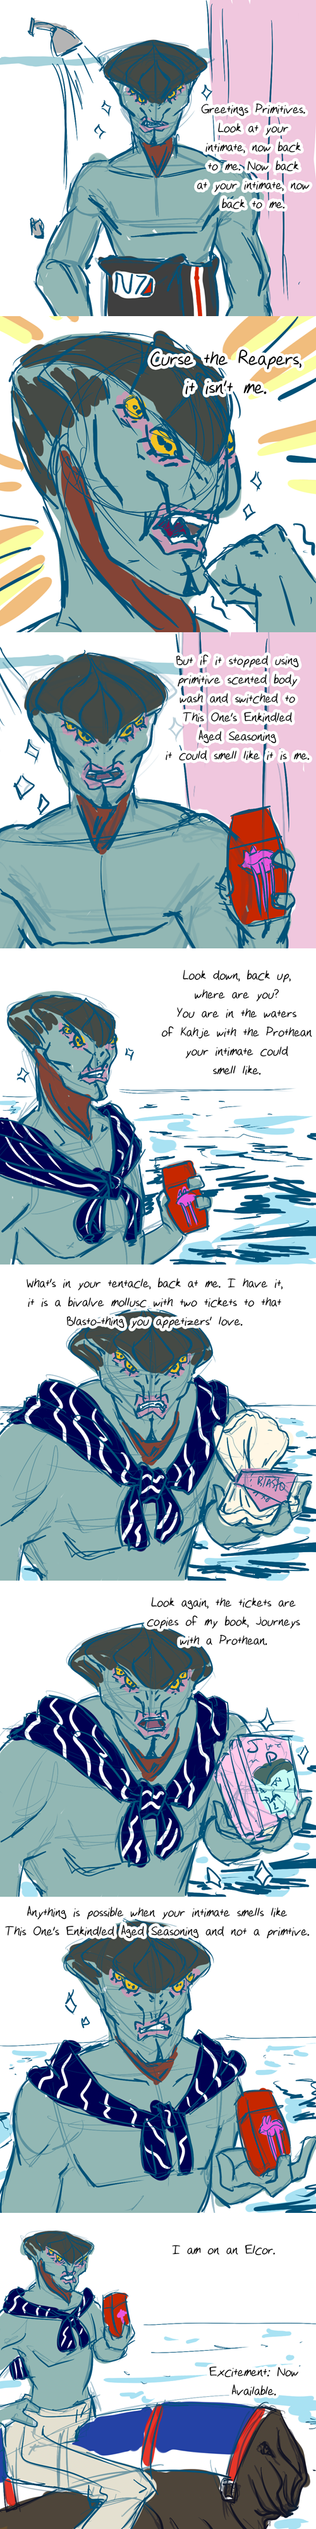 20140330 Javiks Old Spice Commercial by vampirecheetah